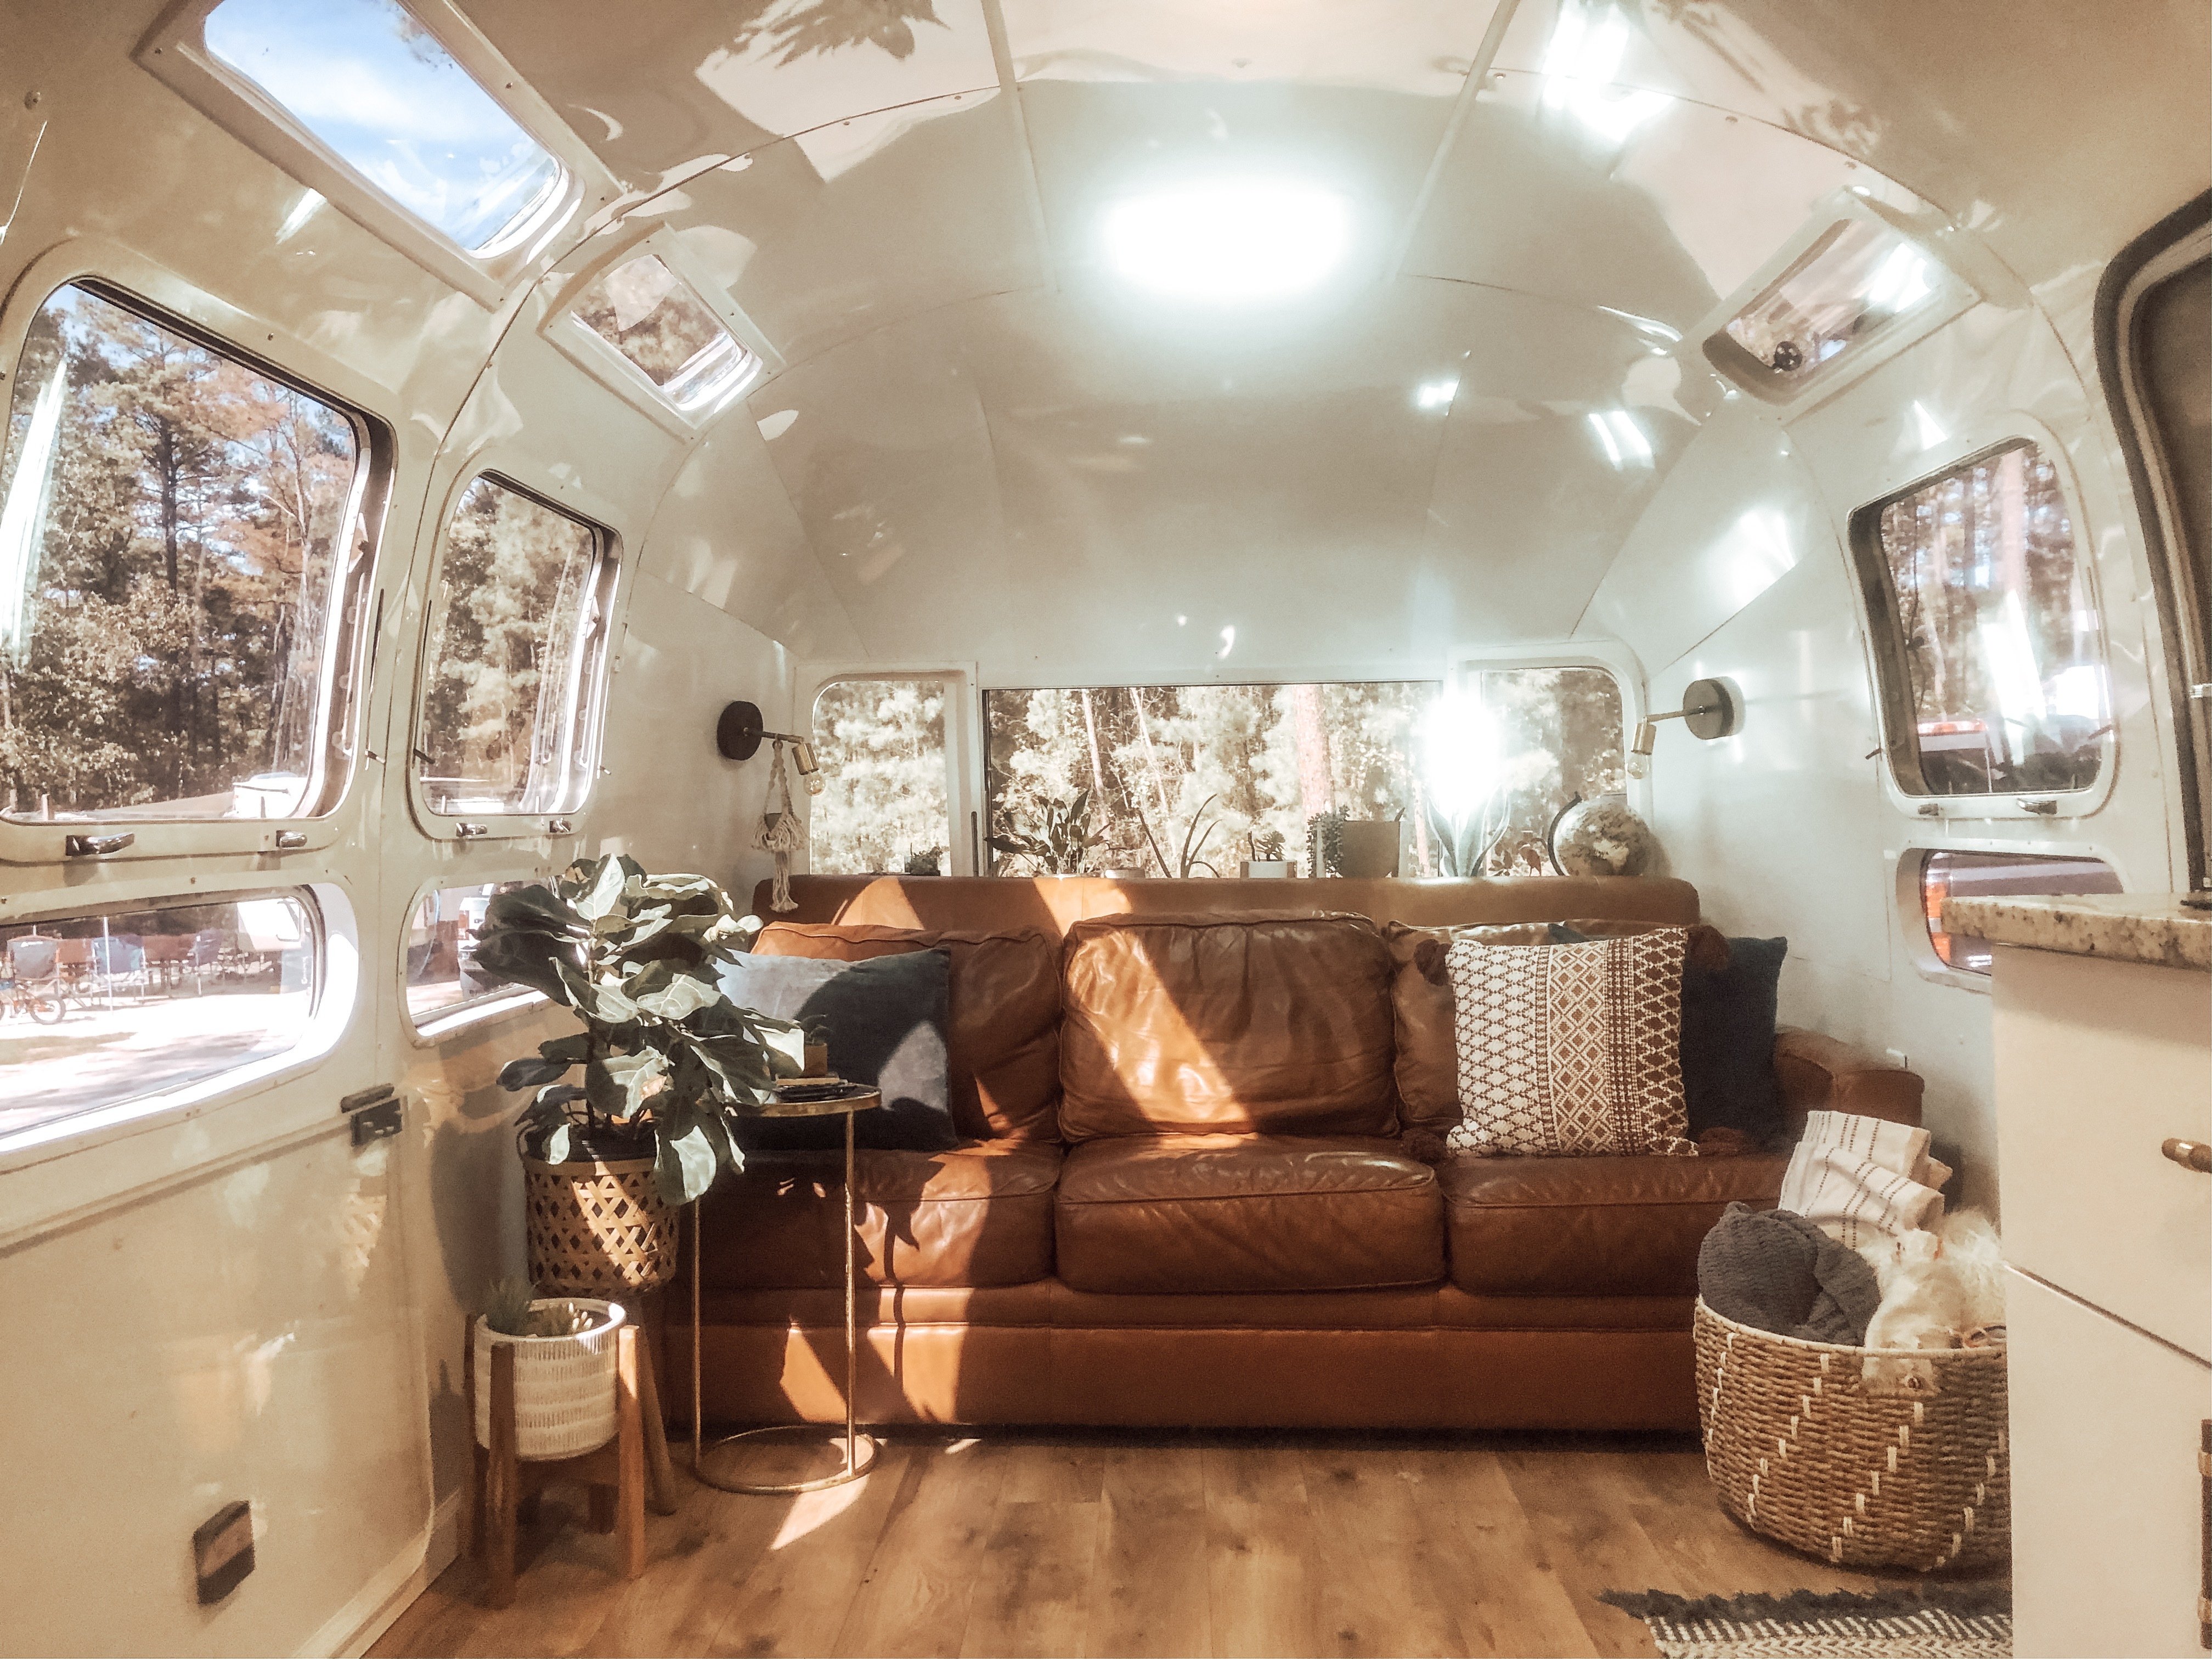 Magnificent 1972 Airstream Gut Renovation Tiny House Tour Apartment Andrewgaddart Wooden Chair Designs For Living Room Andrewgaddartcom